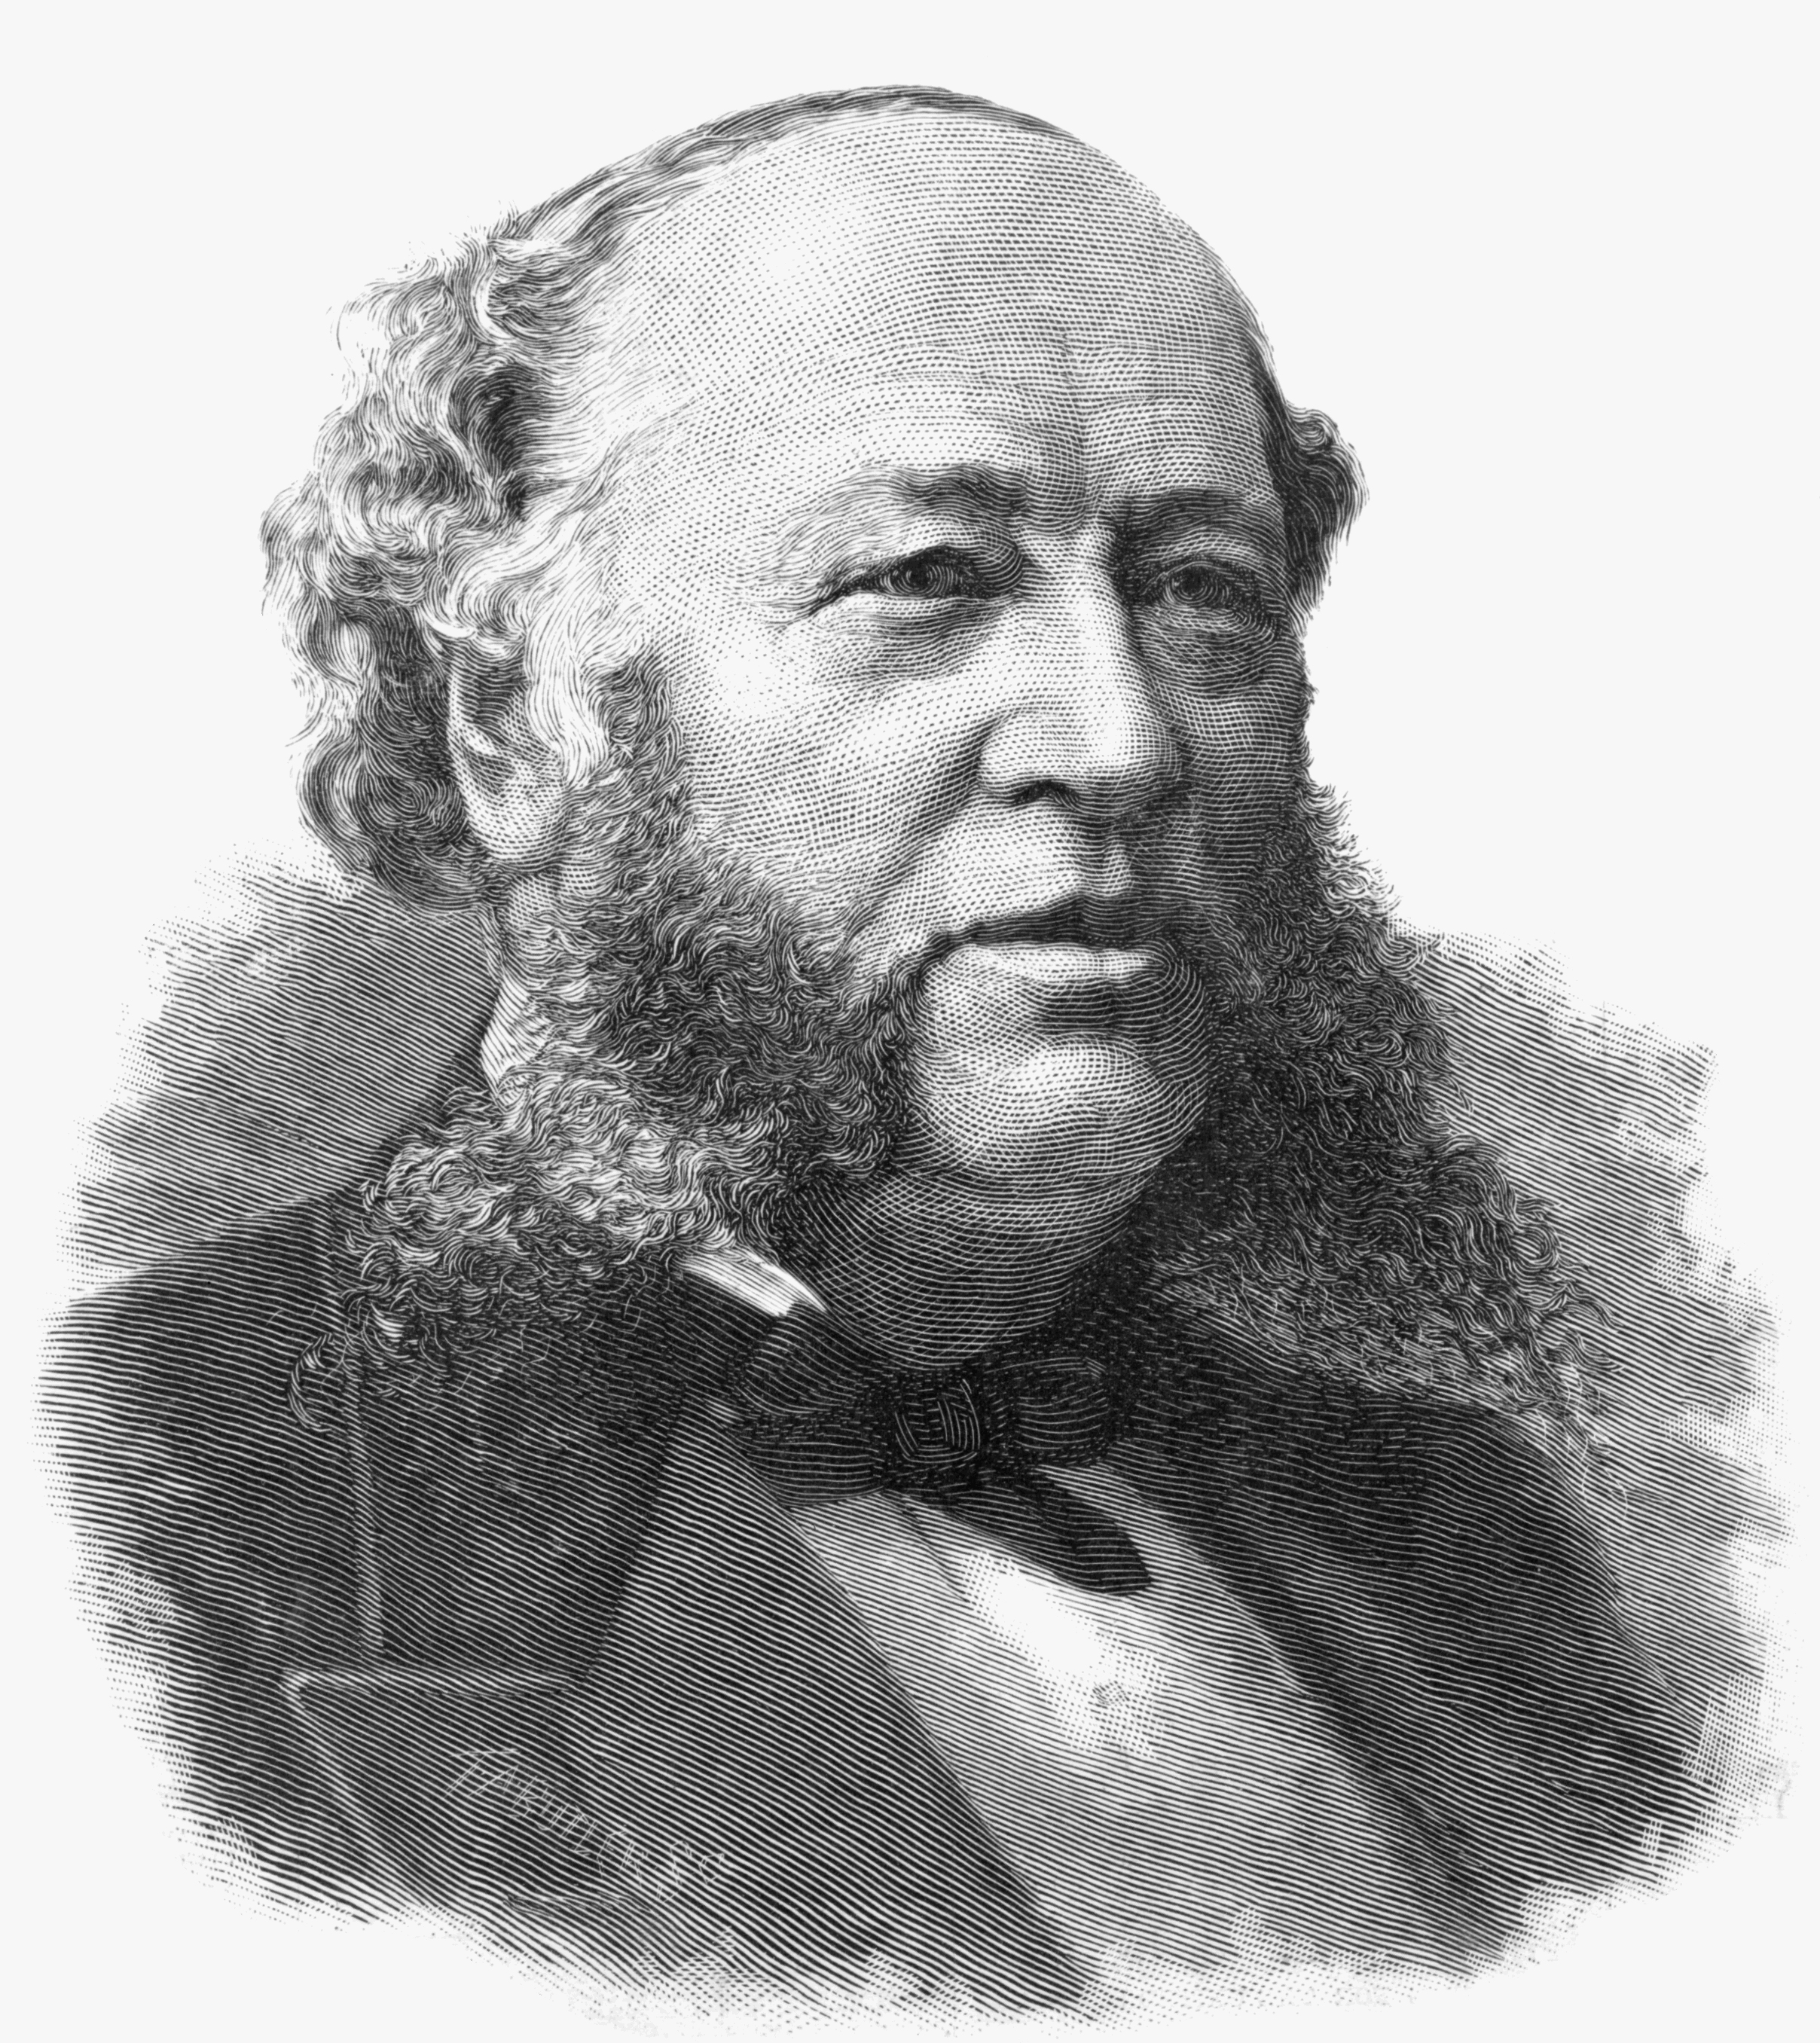 https://upload.wikimedia.org/wikipedia/commons/c/ce/William_H_Vanderbilt.jpg